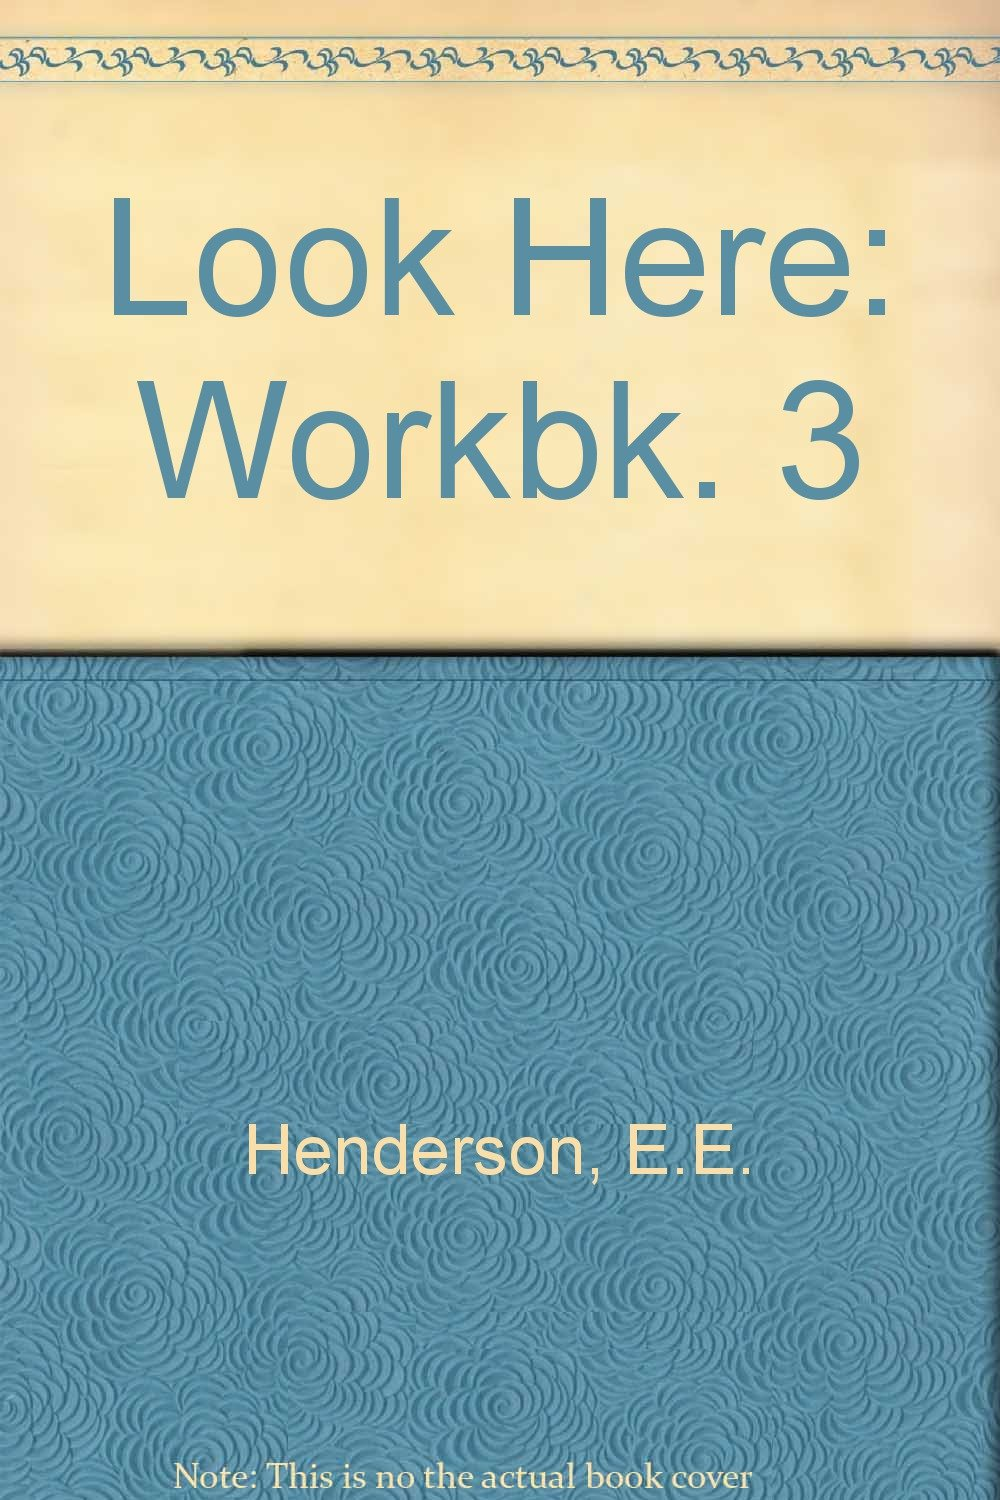 Look Here: Workbk. 3 pdf epub